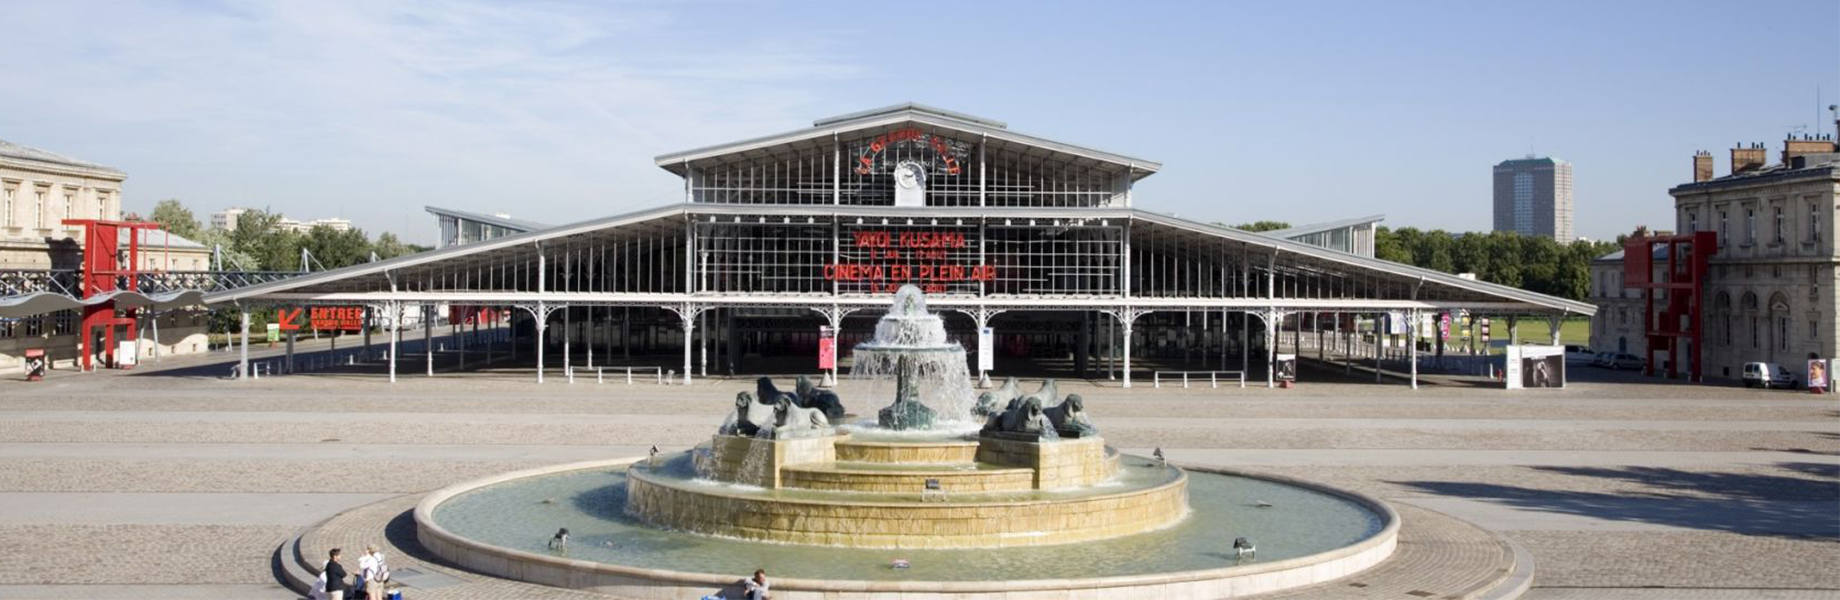 La Villette starts managing its venues with #DIESE